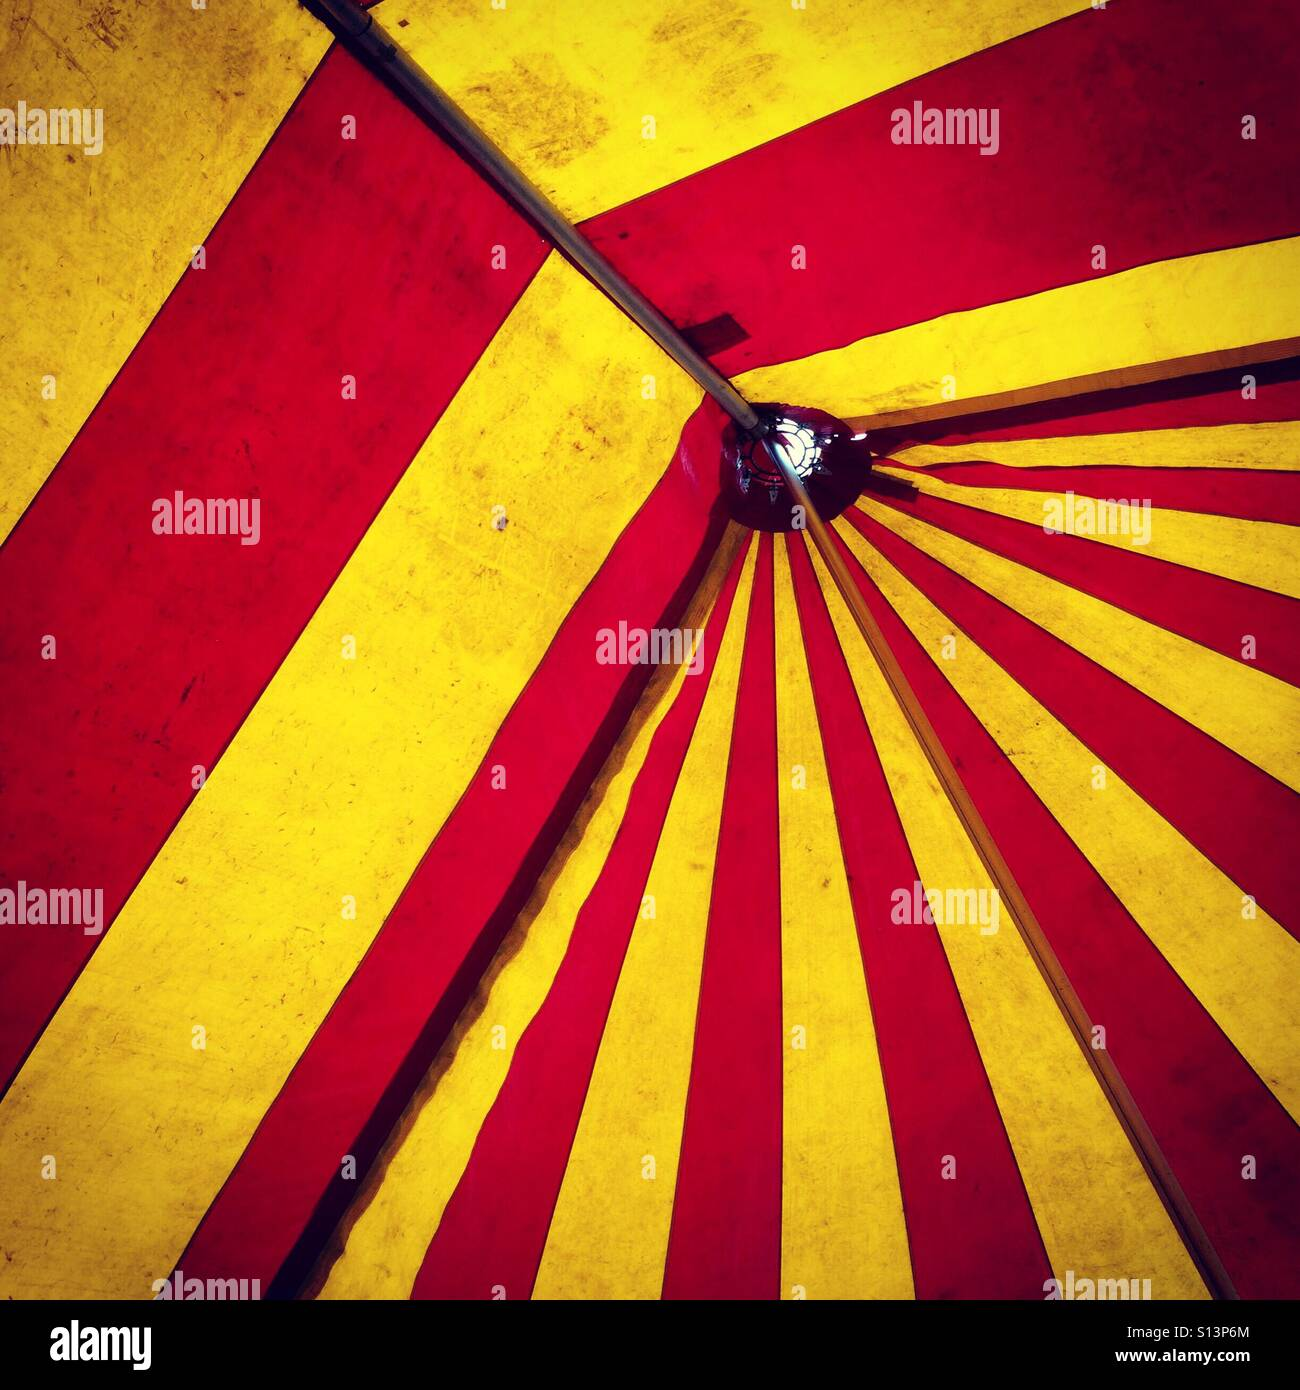 The inside of a red and yellow big top circus tent  sc 1 st  Alamy & The inside of a red and yellow big top circus tent Stock Photo ...